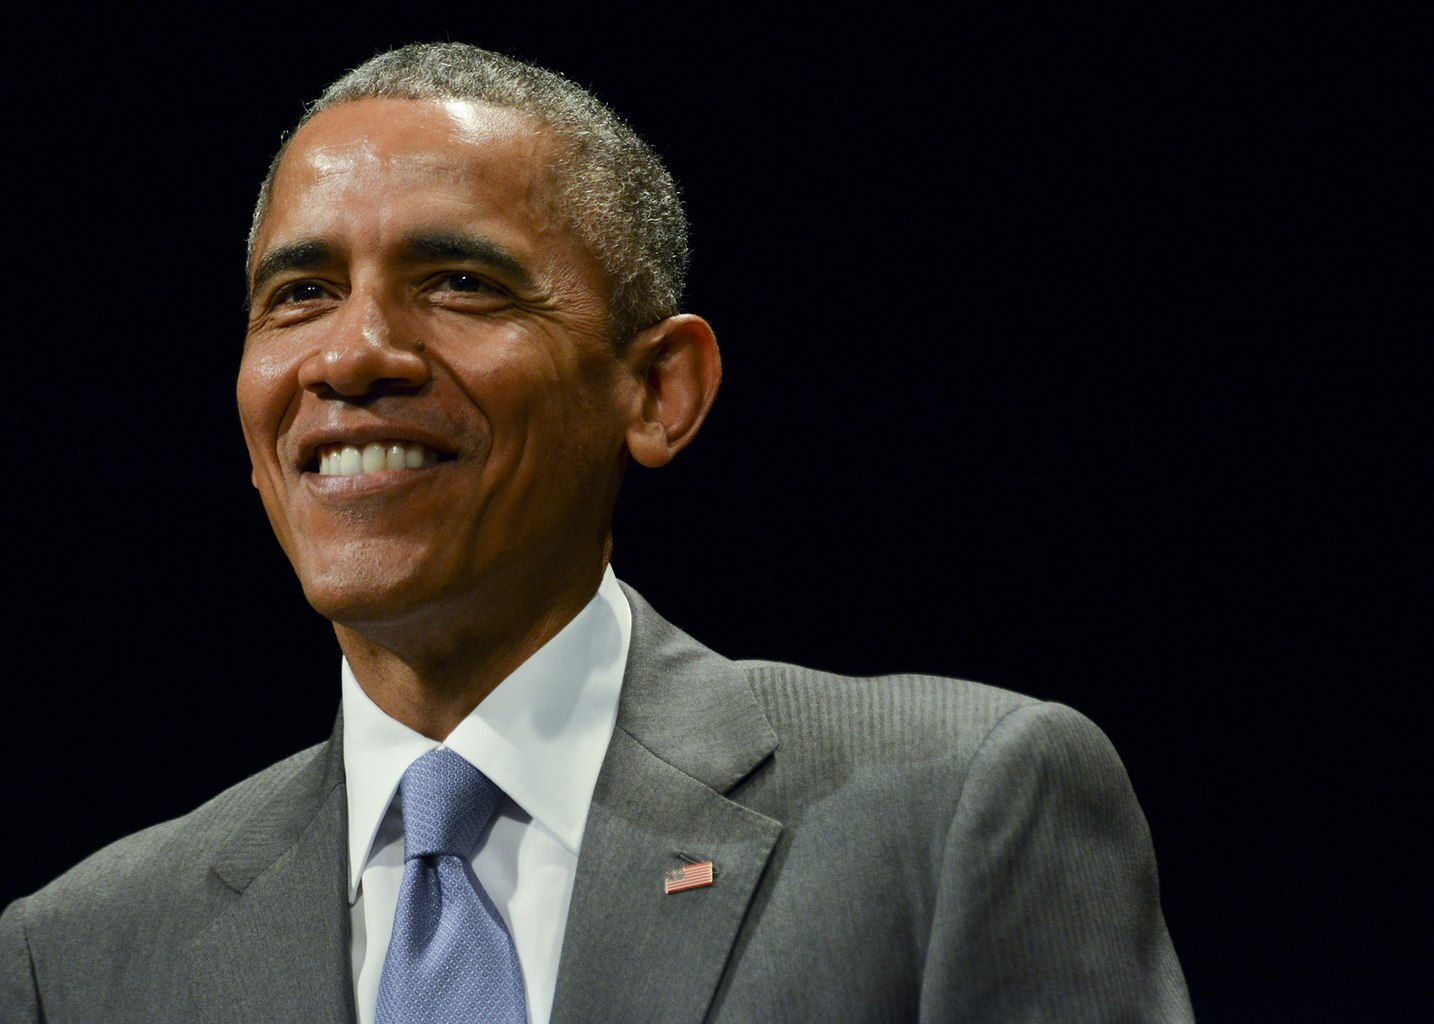 President Barack Obama delivered the keynote address during the 45th Annual Legislative Conference (ALC) Phoenix Awards Dinner in Washington, D.C.